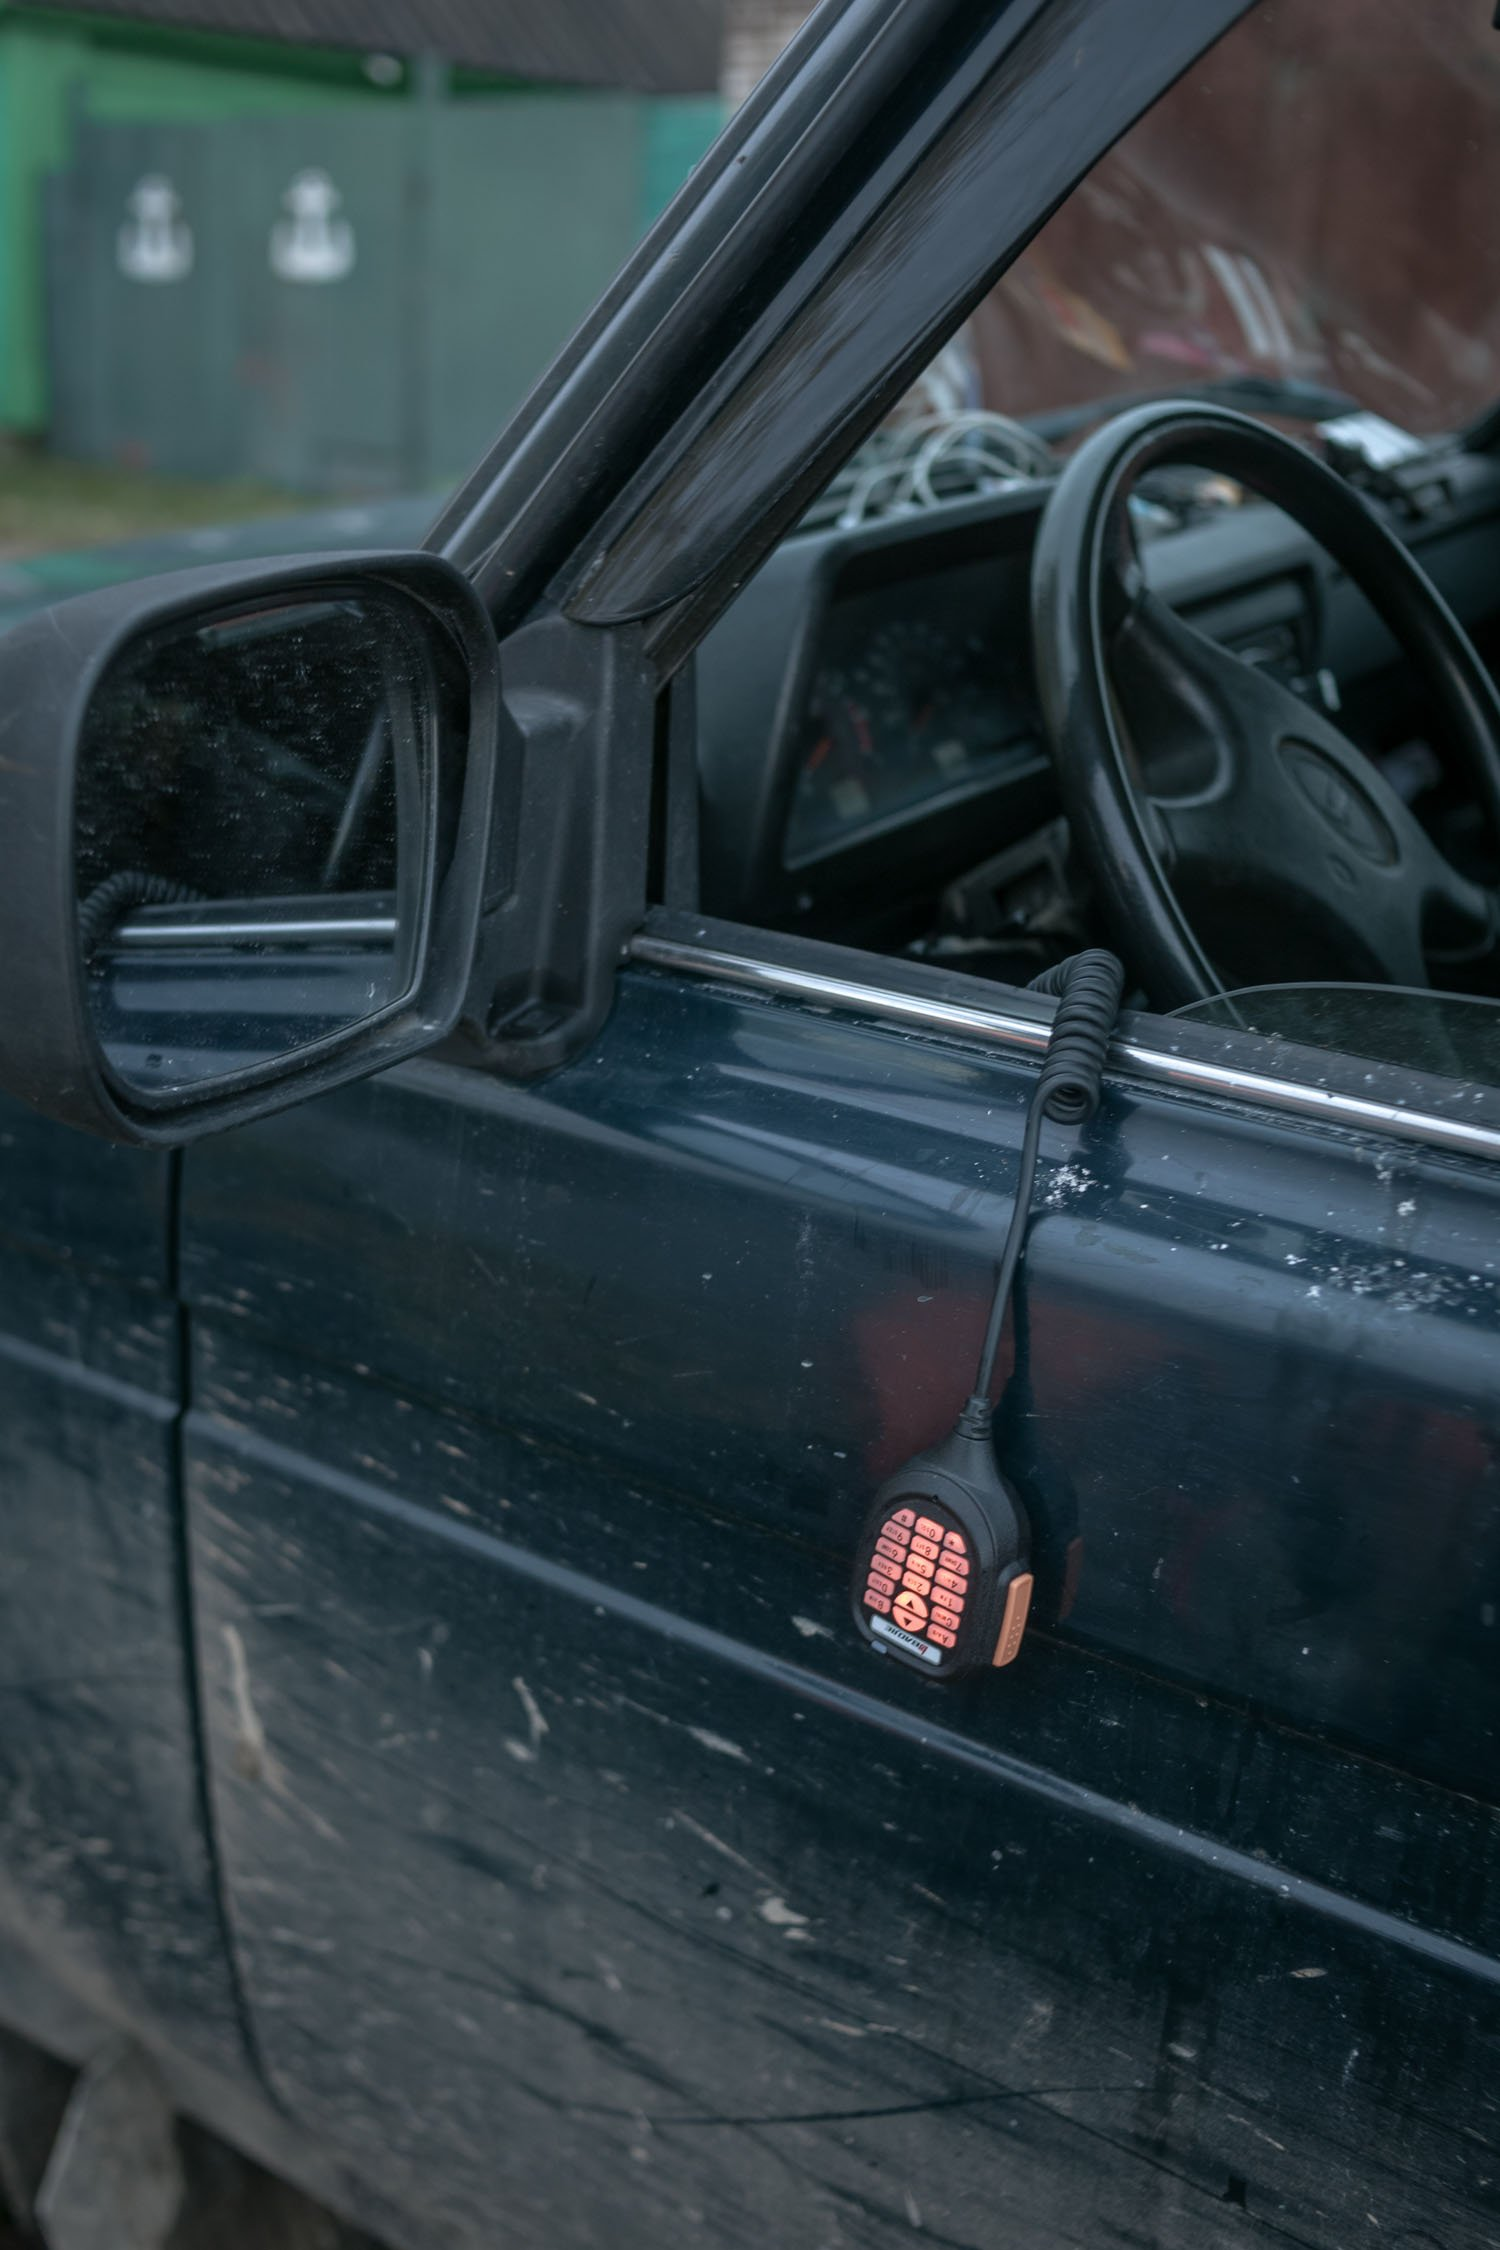 The car radio provides a larger coverage of signal reception.